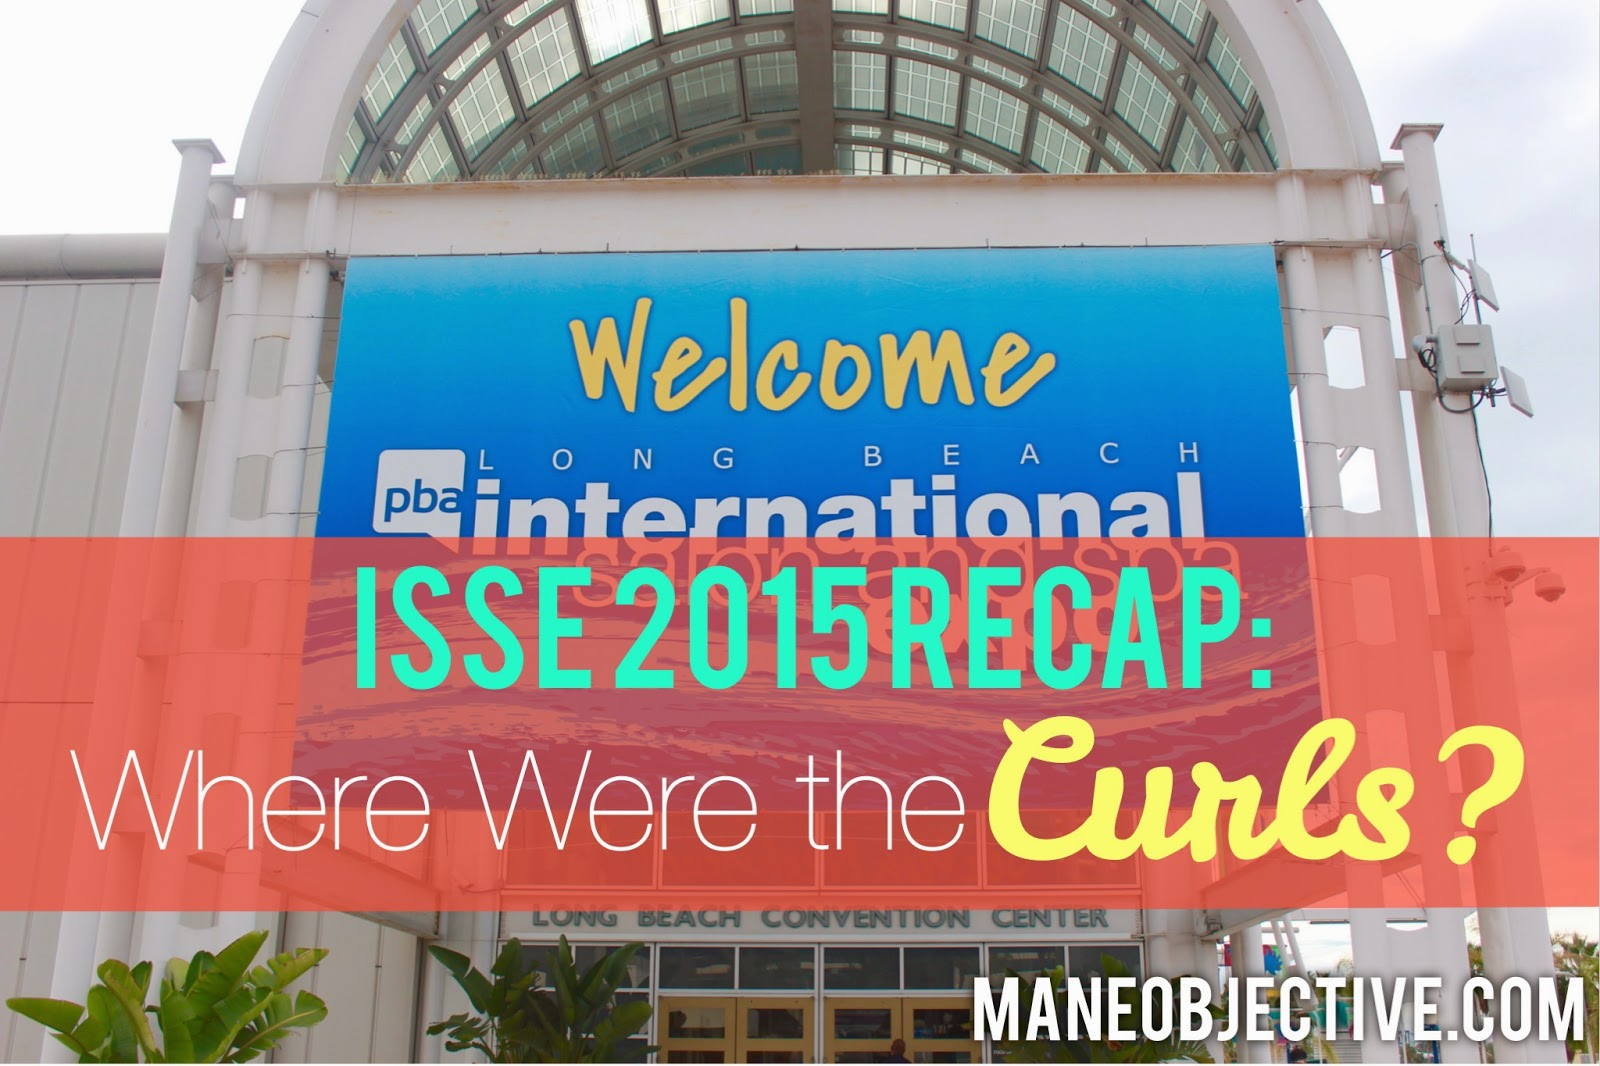 ISSE 2015 Recap: Where Were the Curls?